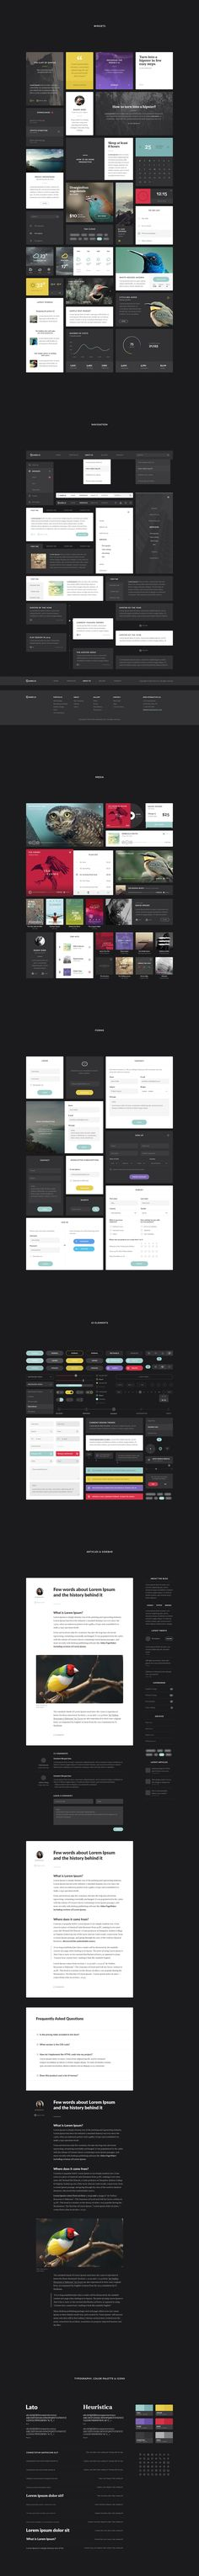 Aves UI Kit Published by Maan Ali